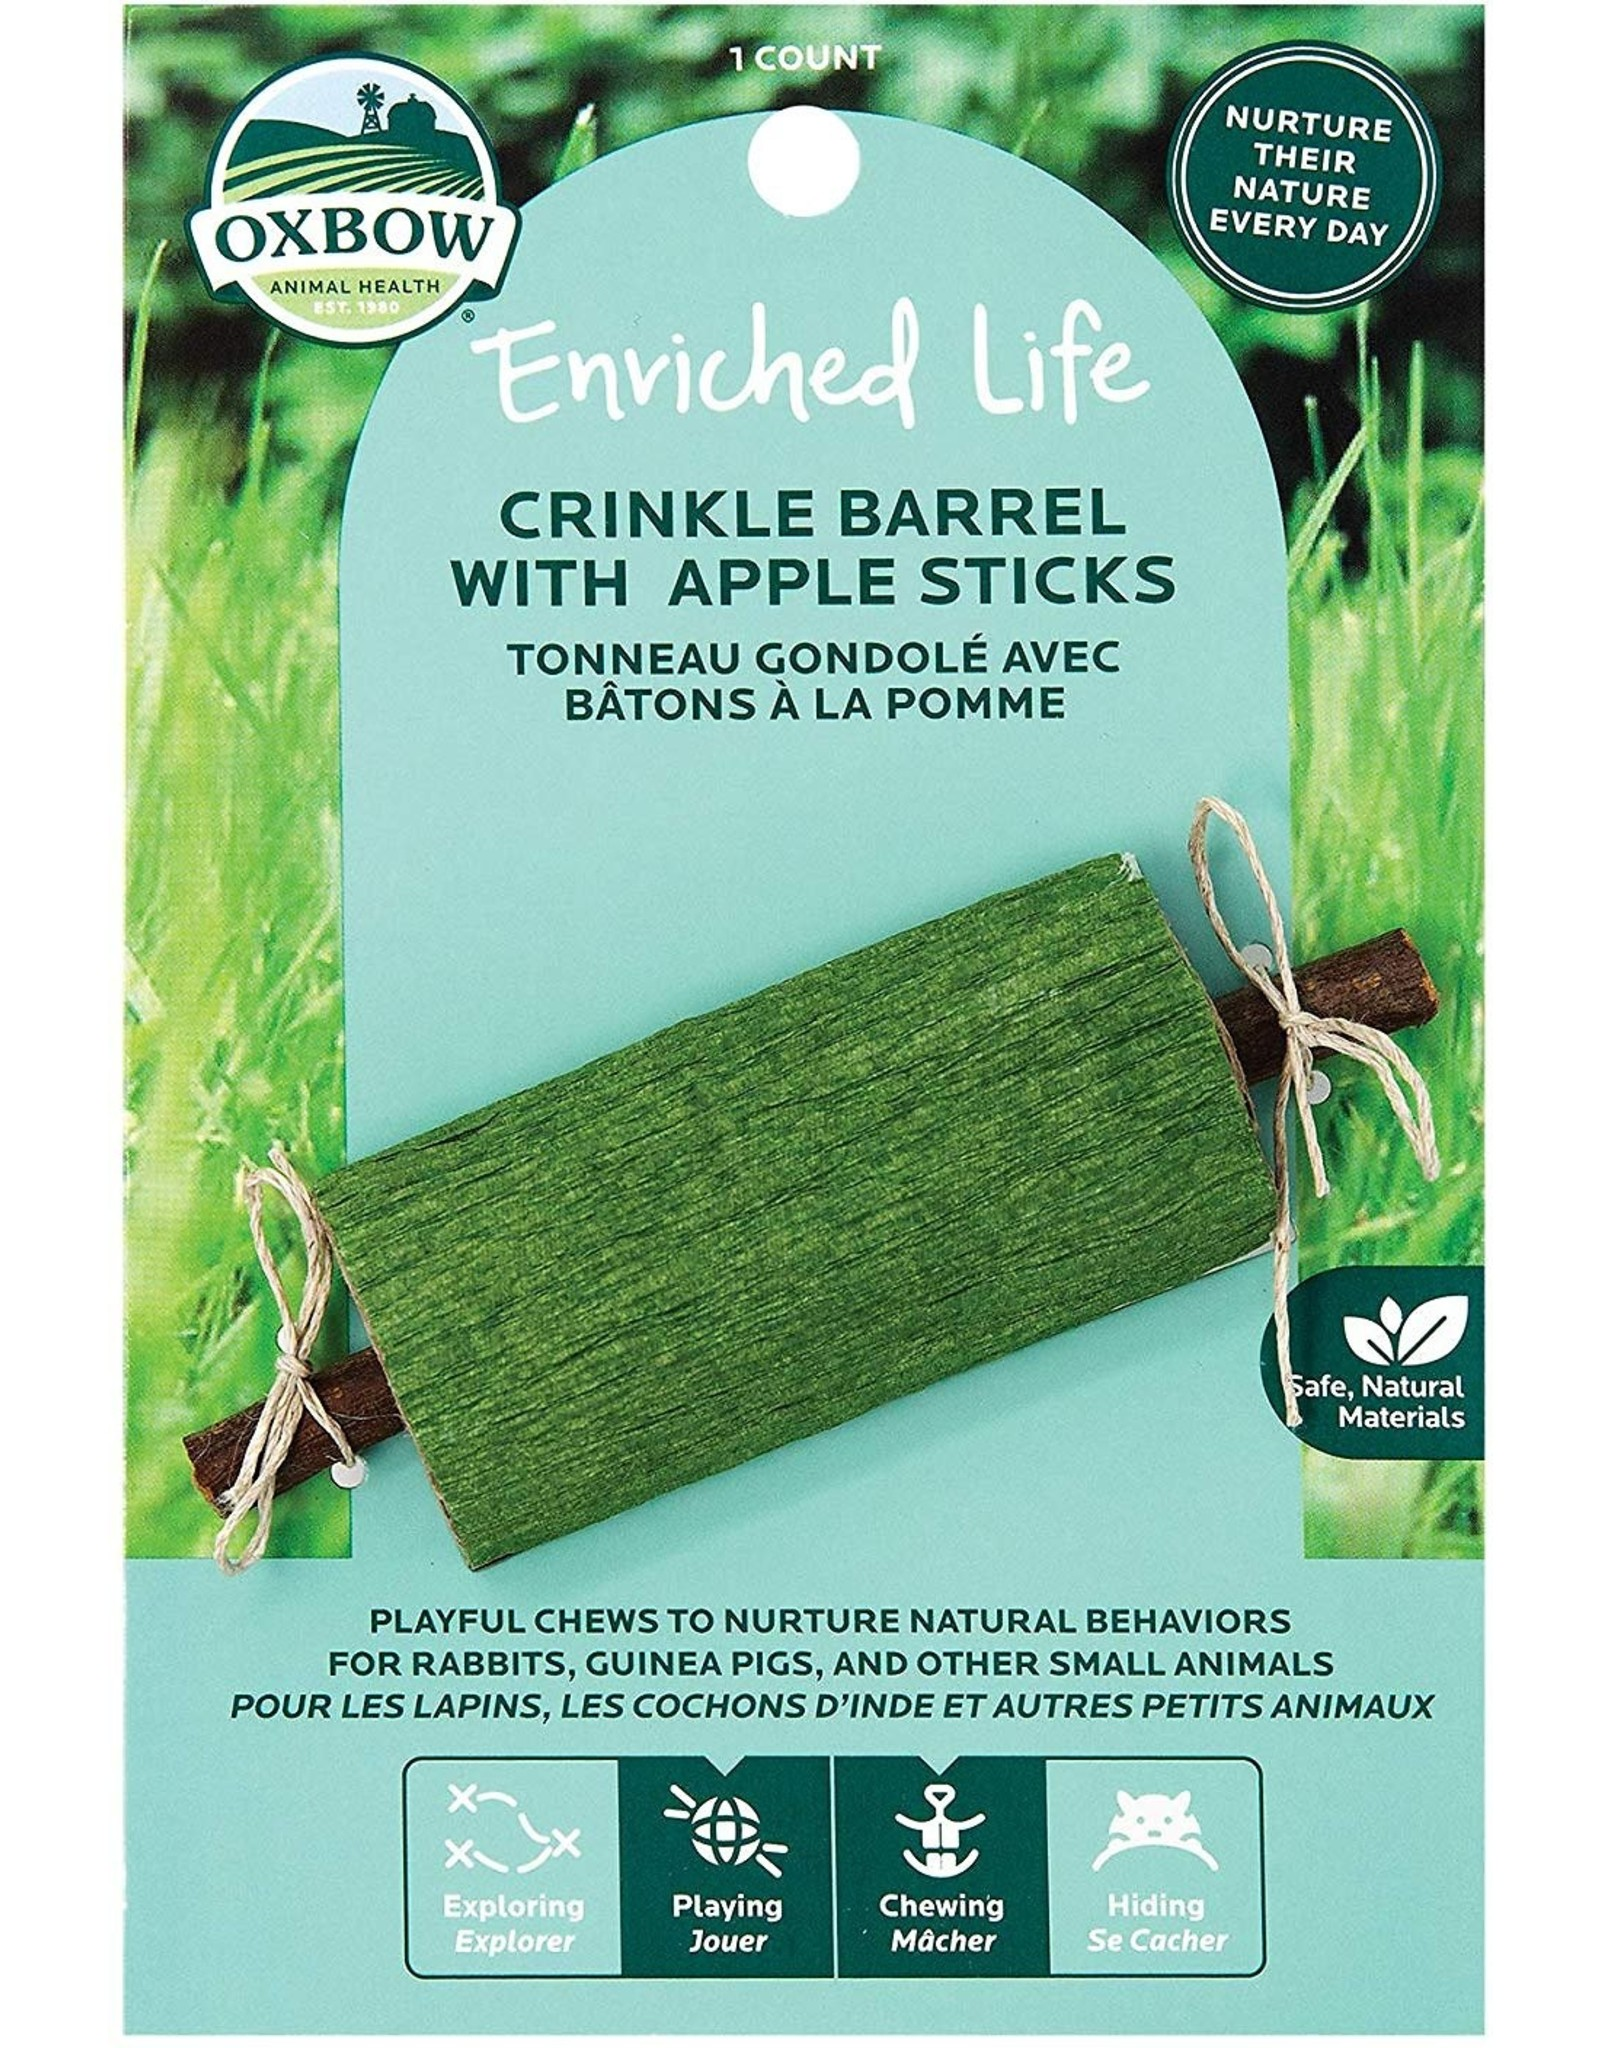 Oxbow Animal Health OXBOW ENRICHED LIFE CRINKLE BARREL SMALL ANIMAL TOY WITH APPLE STICKS